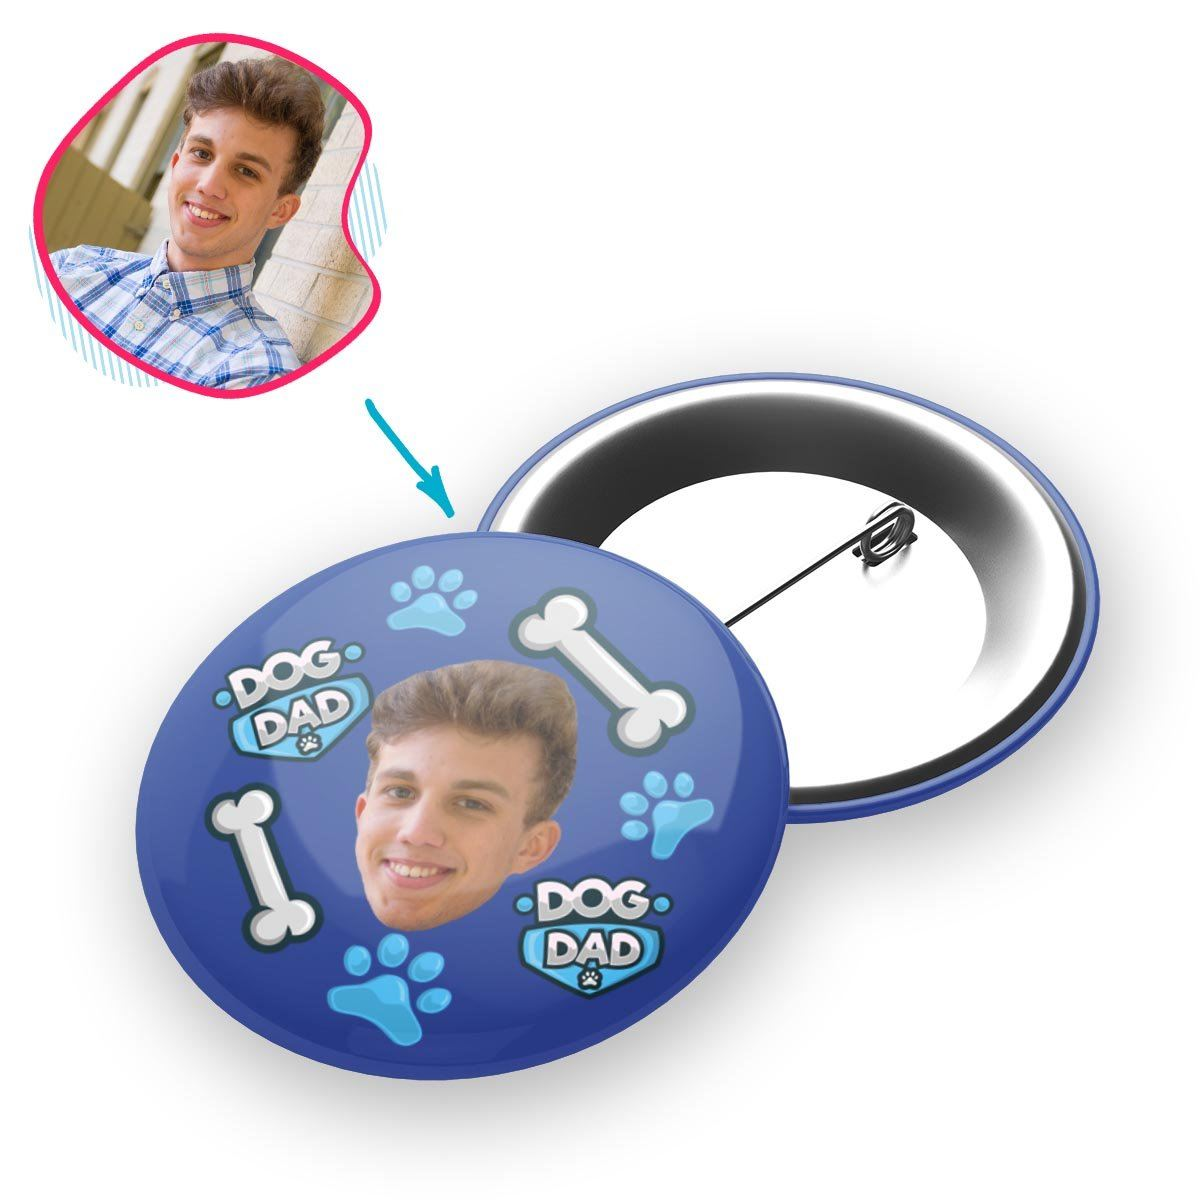 darkblue Dog Dad pin personalized with photo of face printed on it